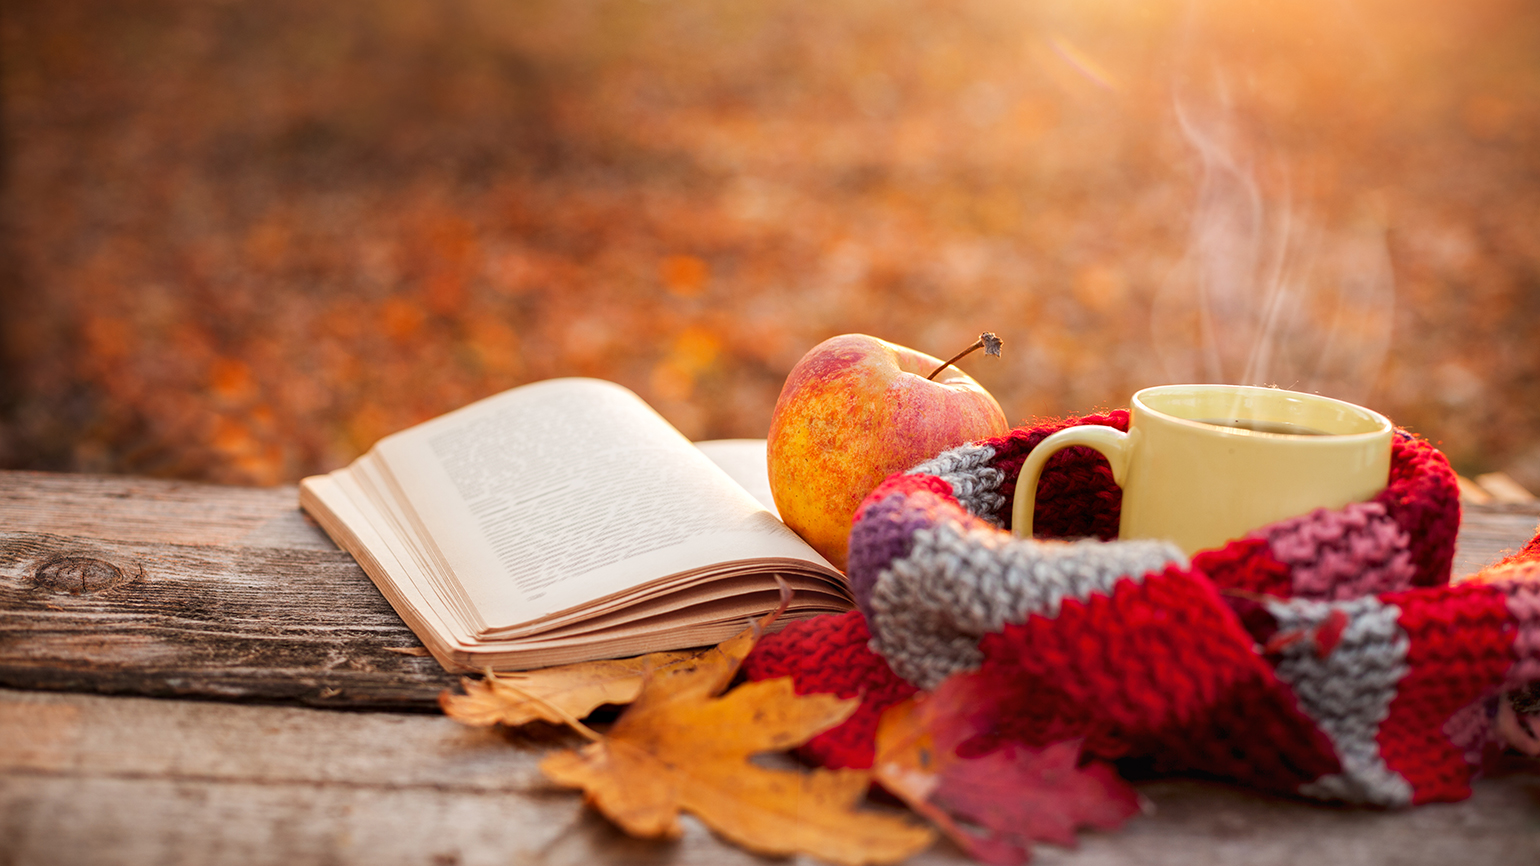 A book, an apple, a cup of coffee and a woolen scarf rest on on a bench on an autumn afternoon